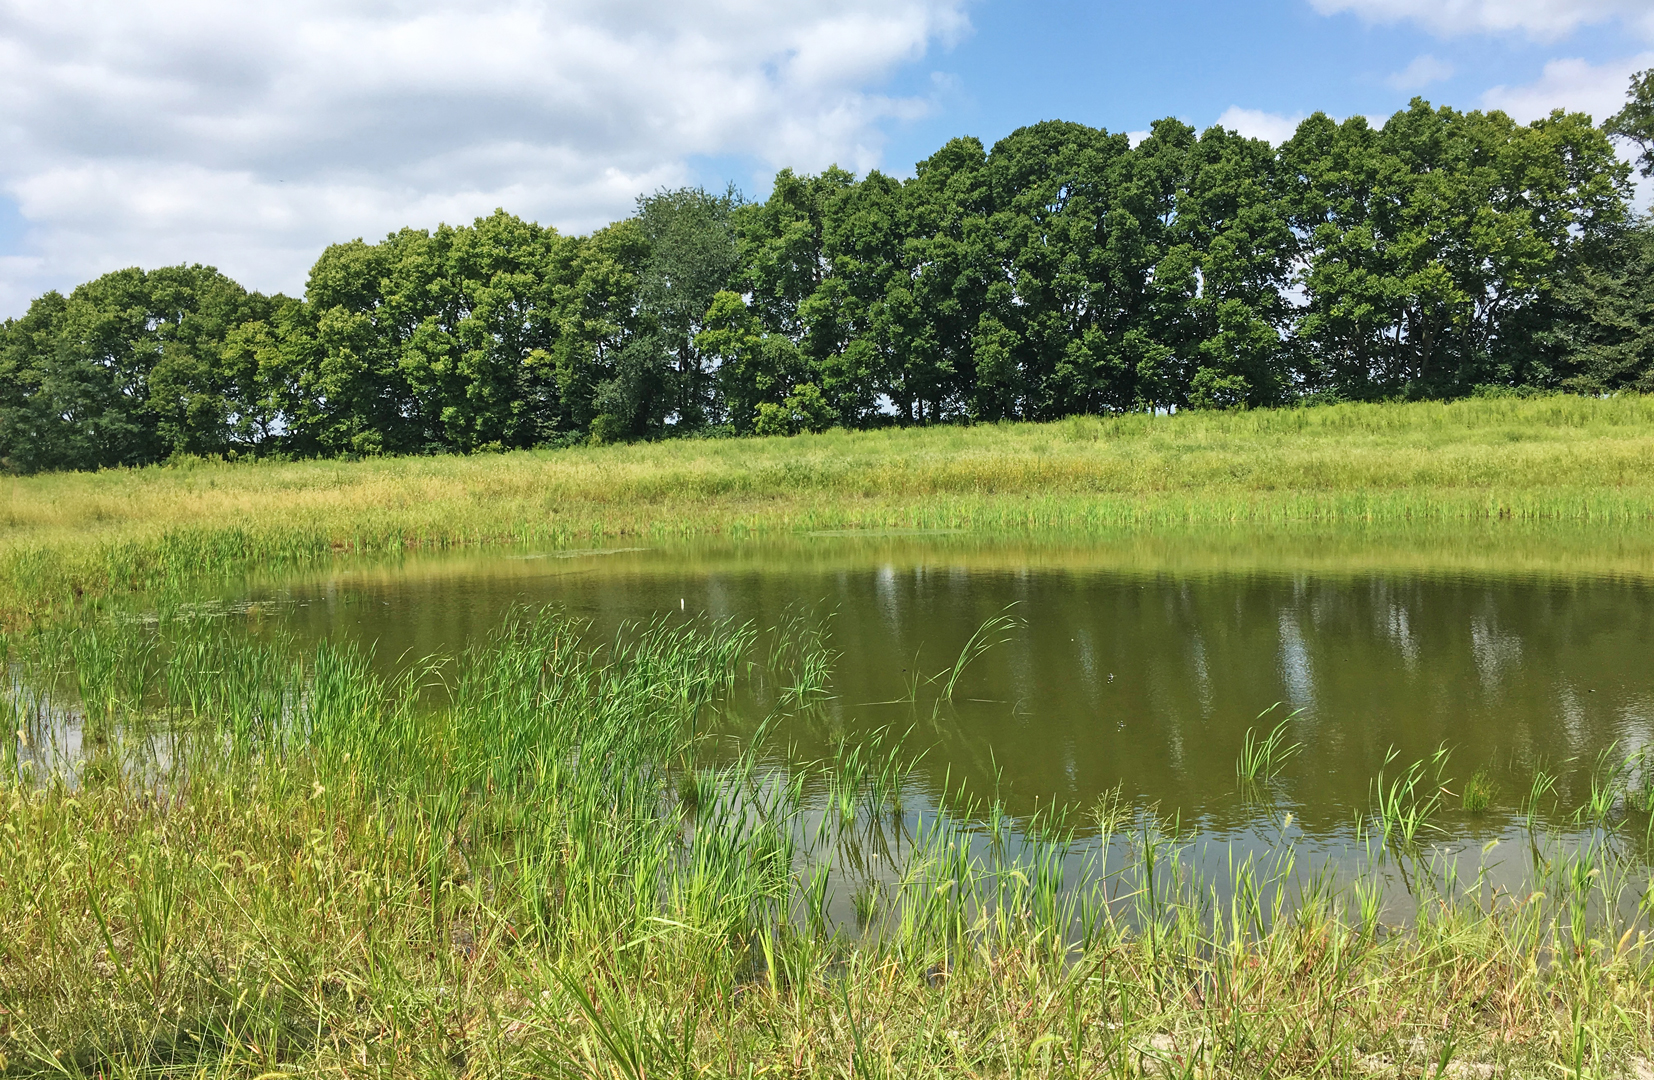 A restored kettle lake at Burning Lake area in Pickerington Ponds Metro Park